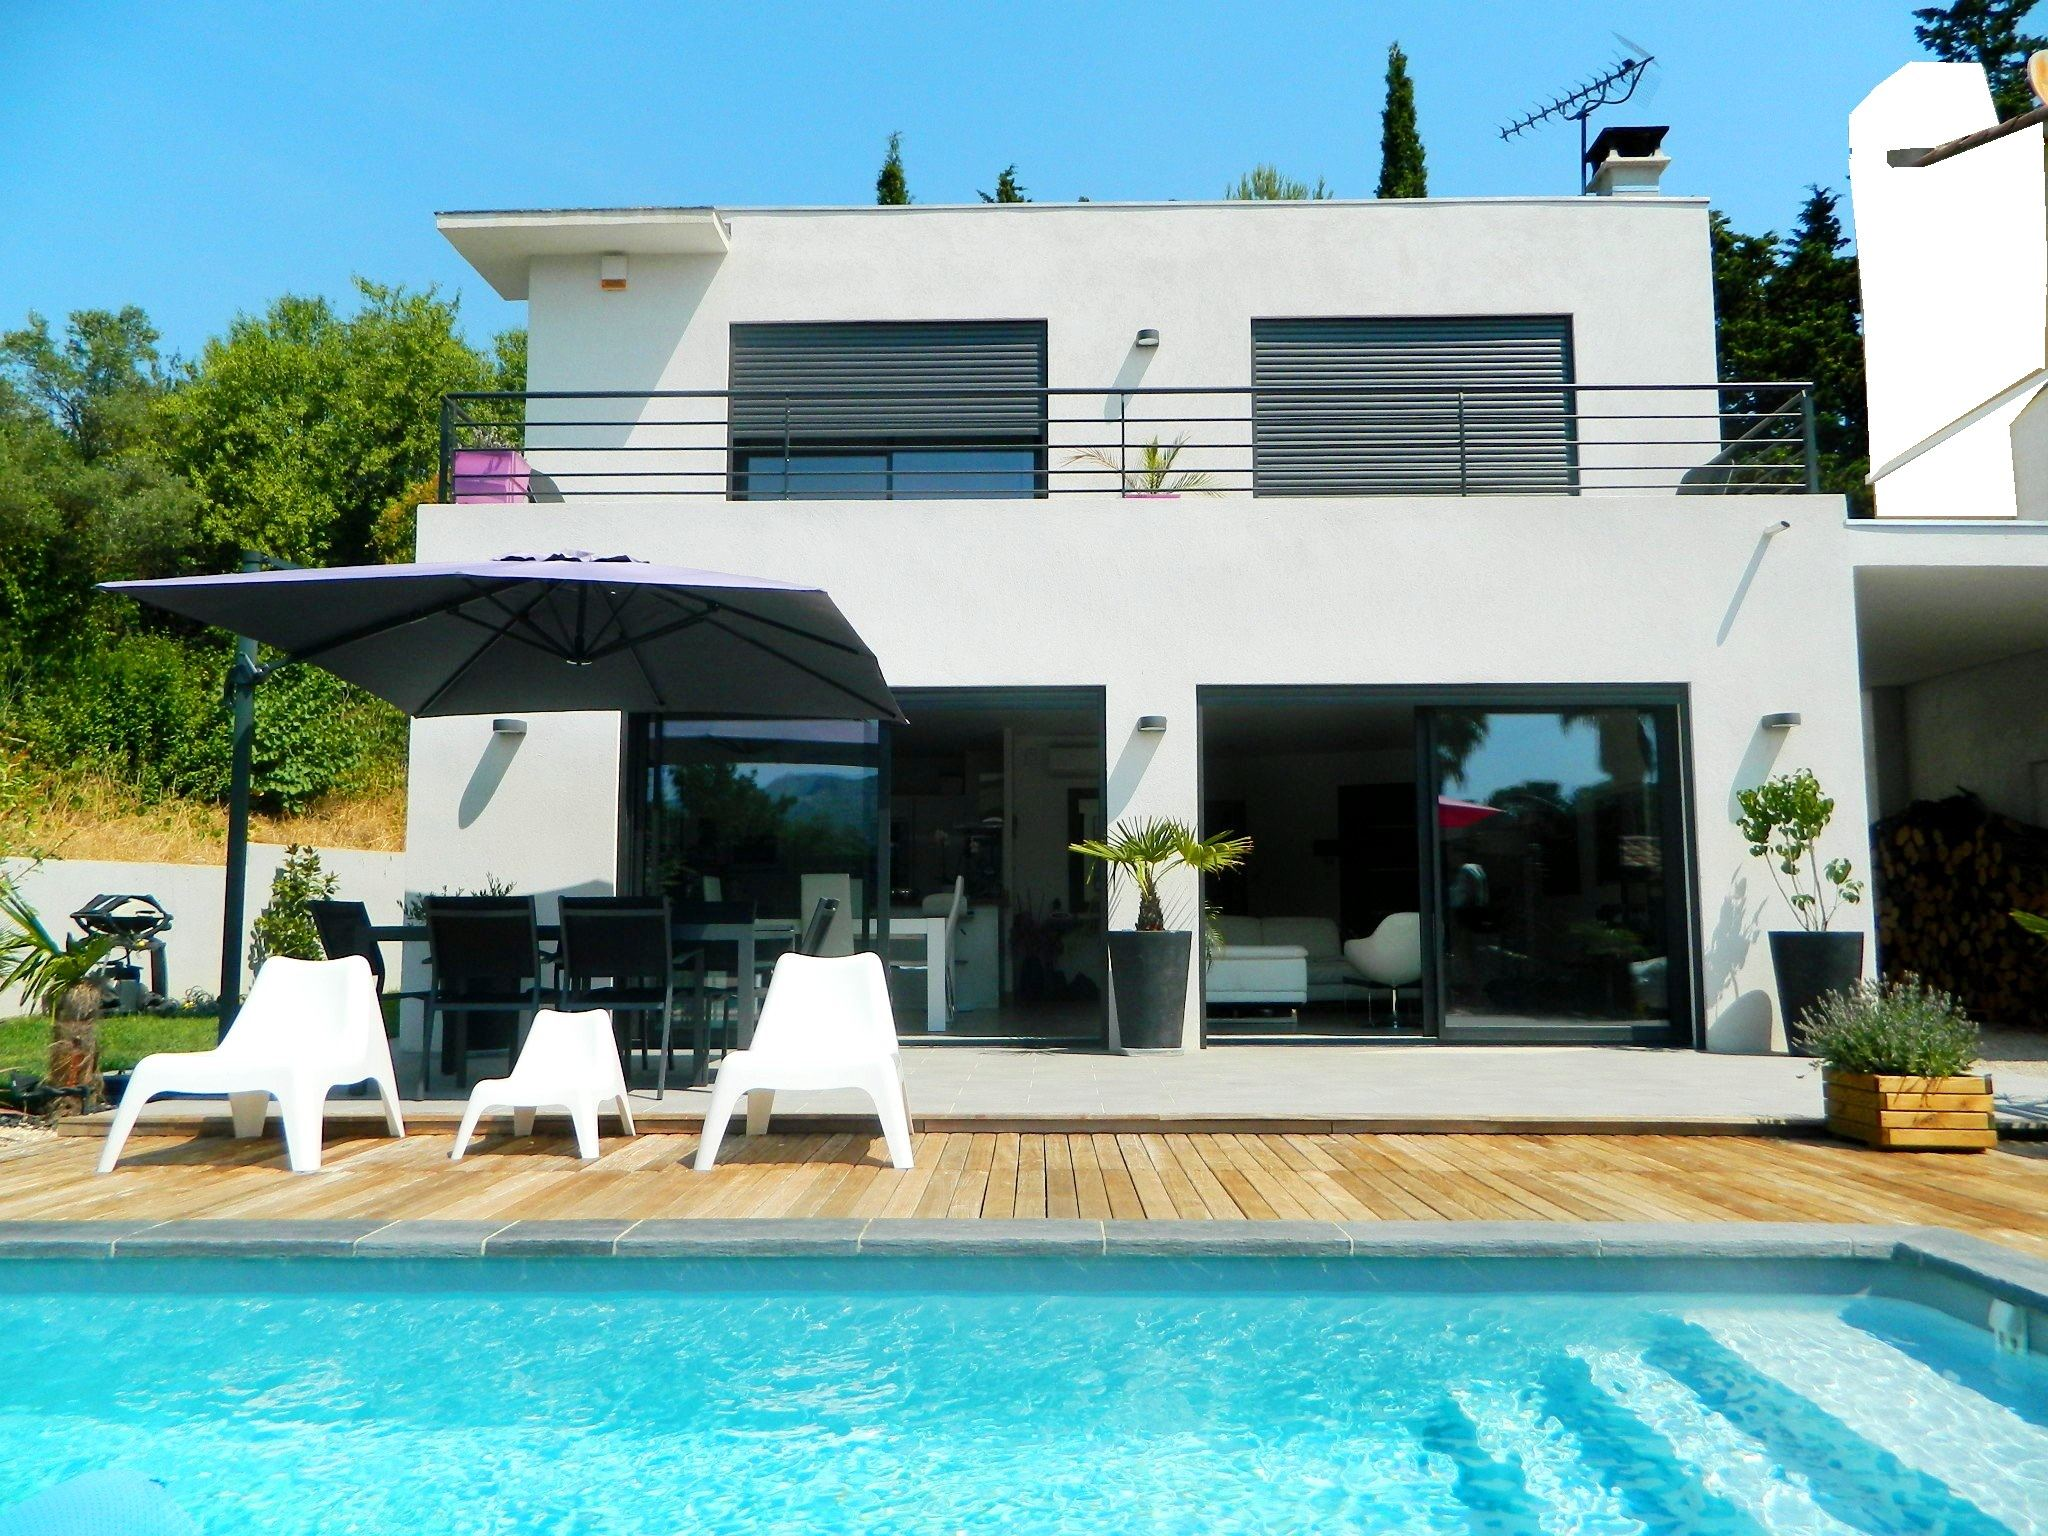 Single Family Home for Sale at House Marseille, Provence-Alpes-Cote D'Azur, 13011 France